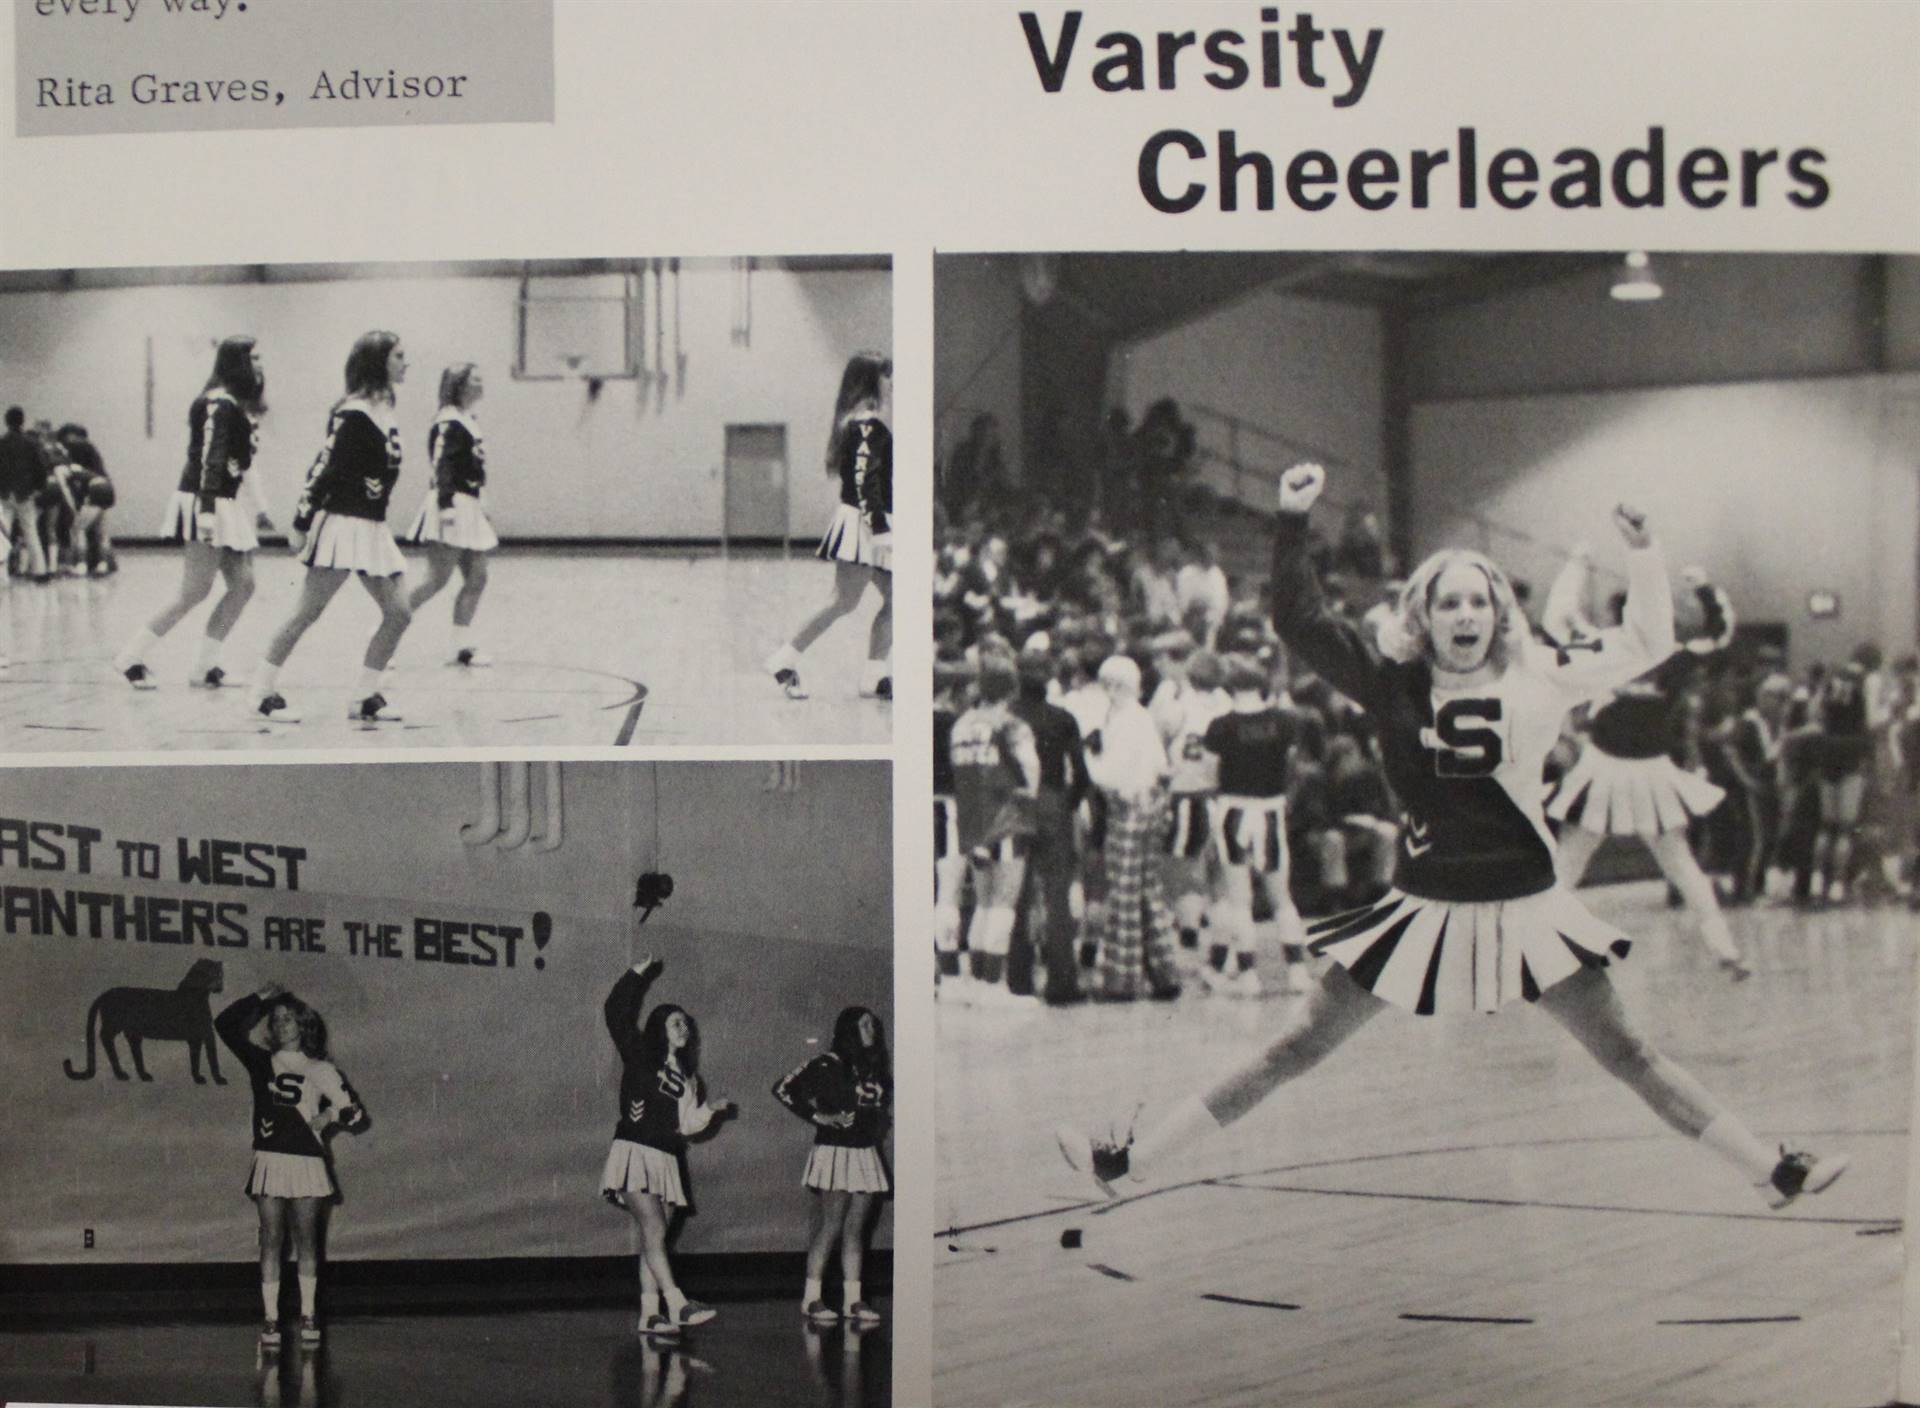 1974 Varsity Cheerleaders